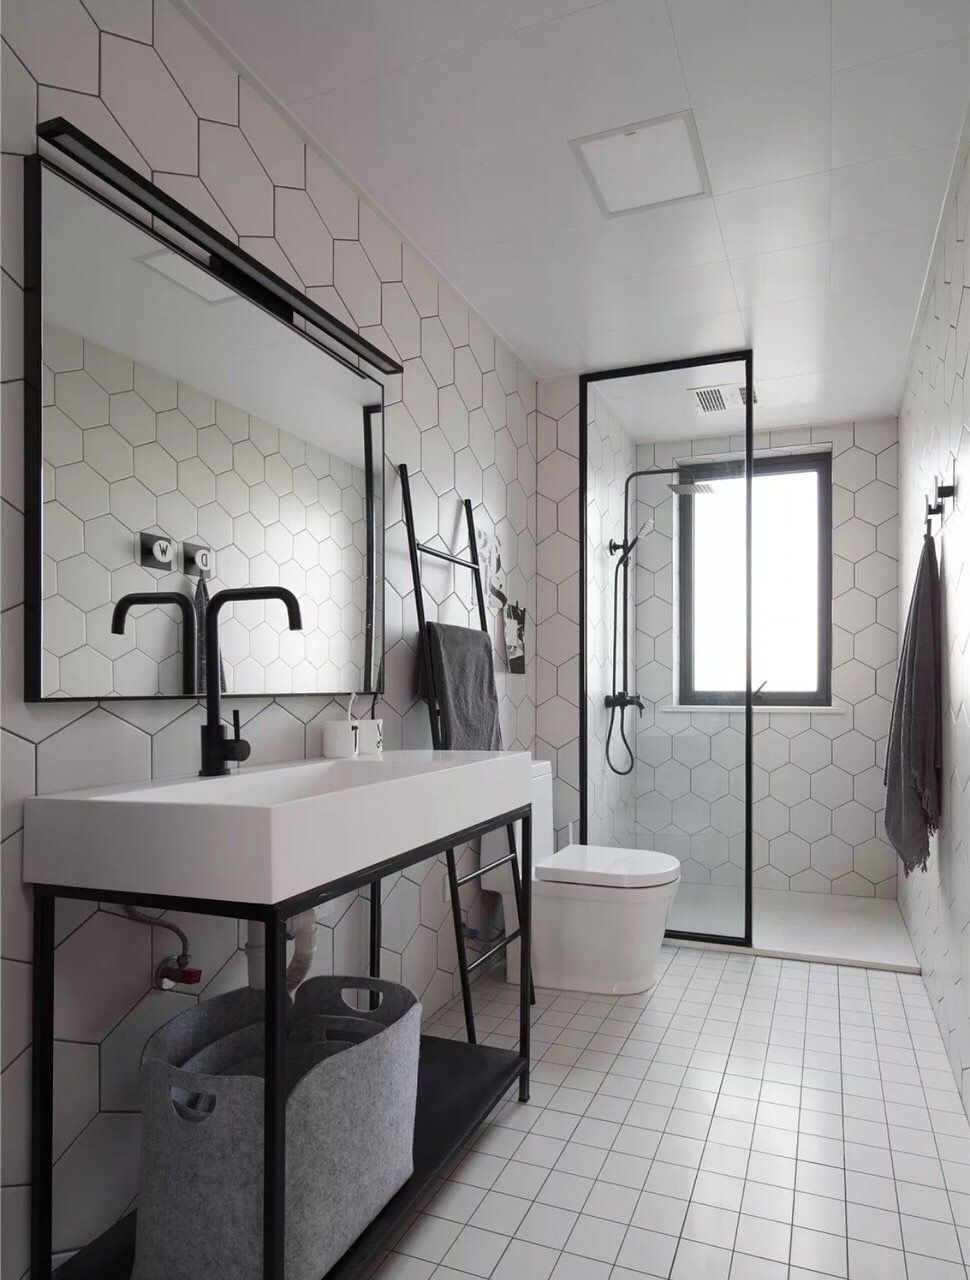 15 Long Narrow Bathroom Ideas That Are Functional And Stylish In 2020 Industrial Bathroom Design Narrow Bathroom Stylish Bathroom